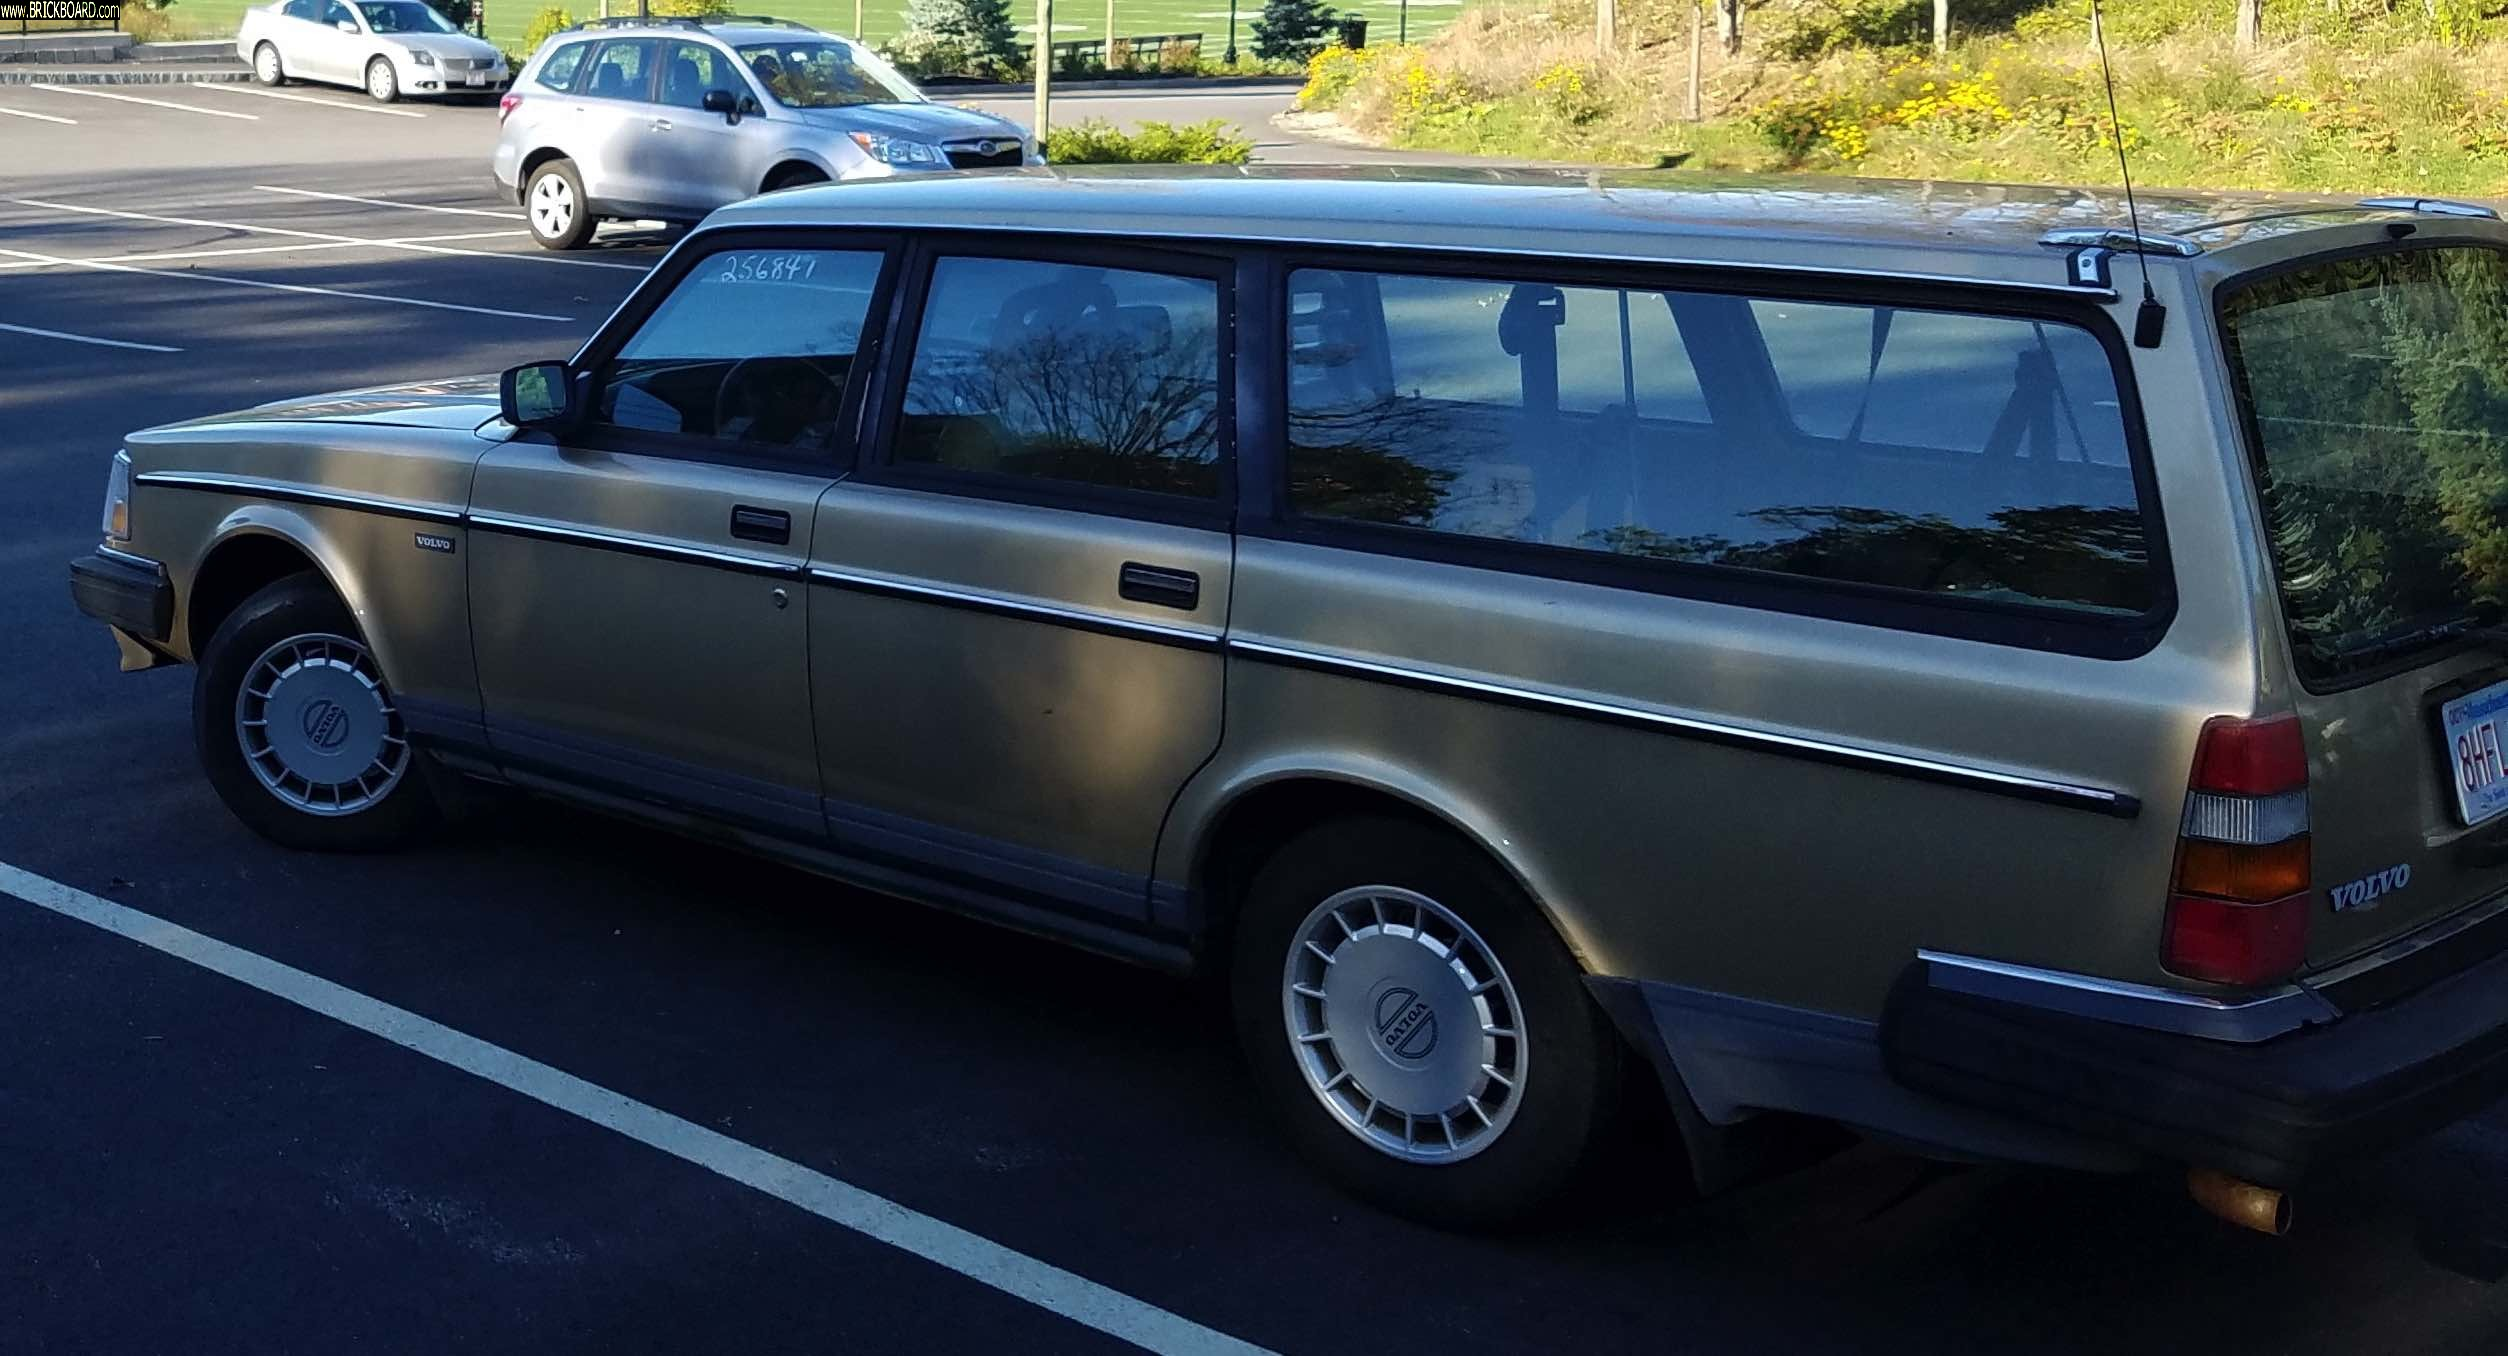 Volvo 200 -- Manual 1990 240 Wagon (or lots of parts)